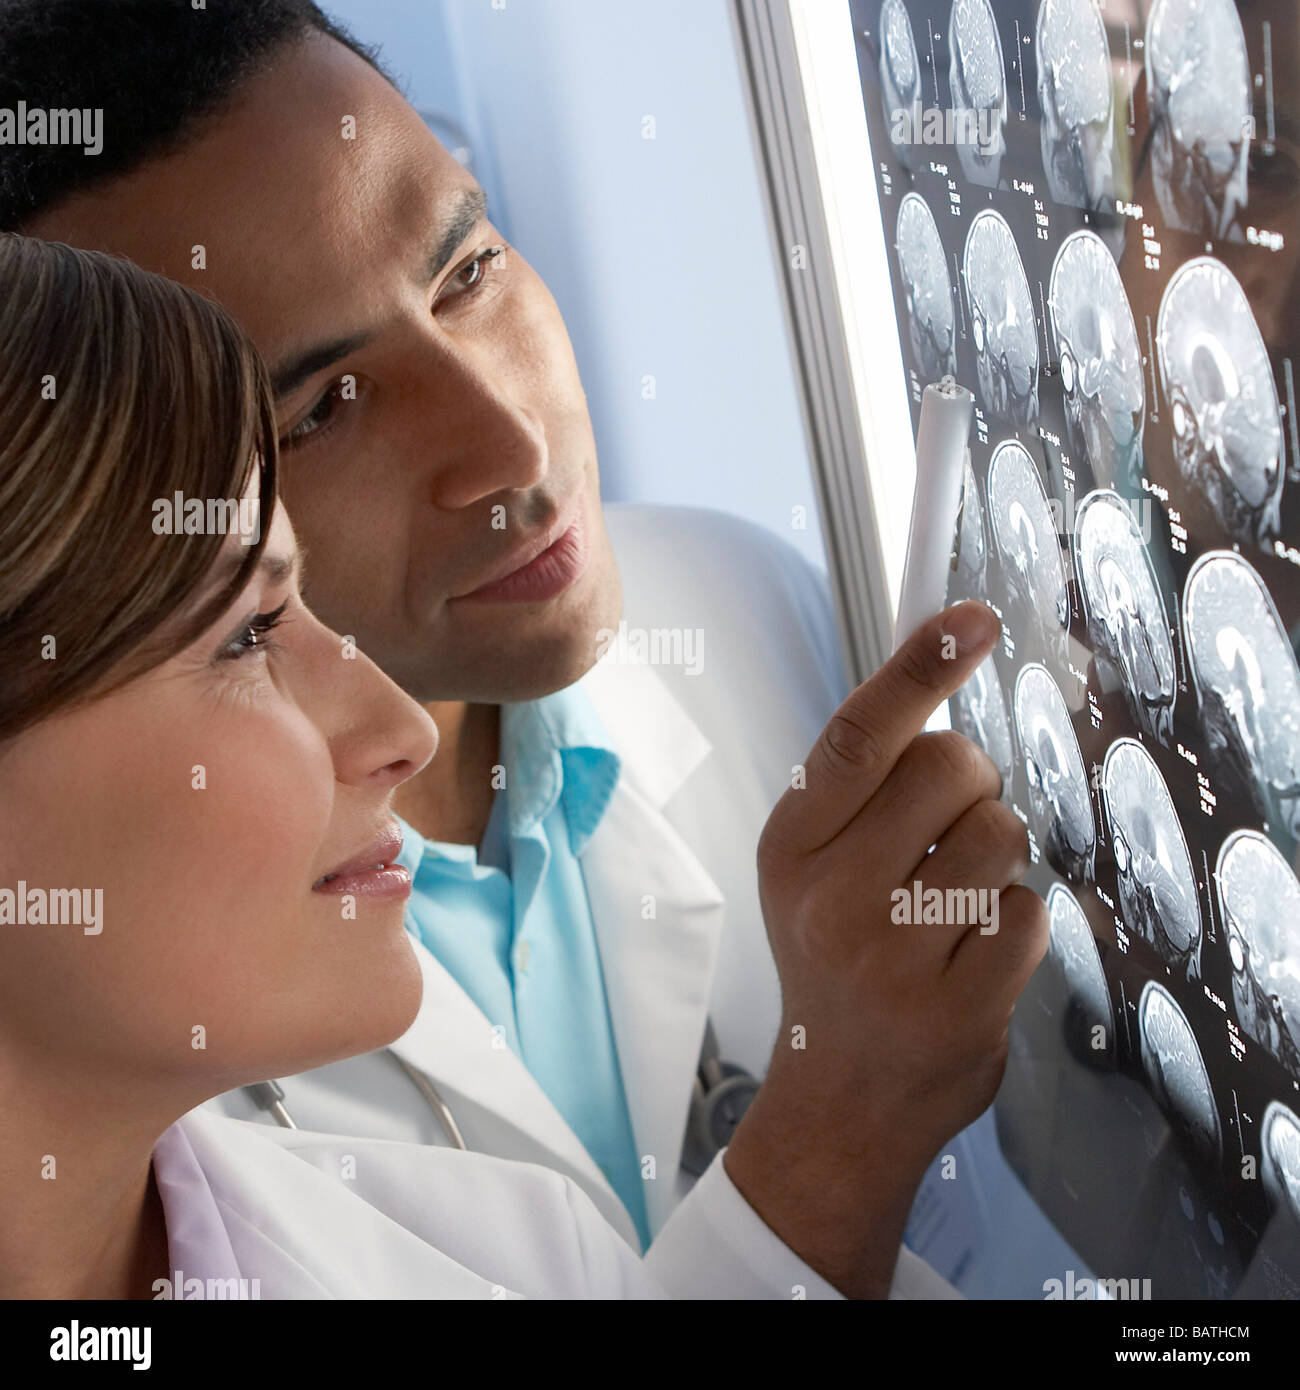 Doctors examining MRI scans.The scans are sagittal (side view) sections through a patient head - Stock Image